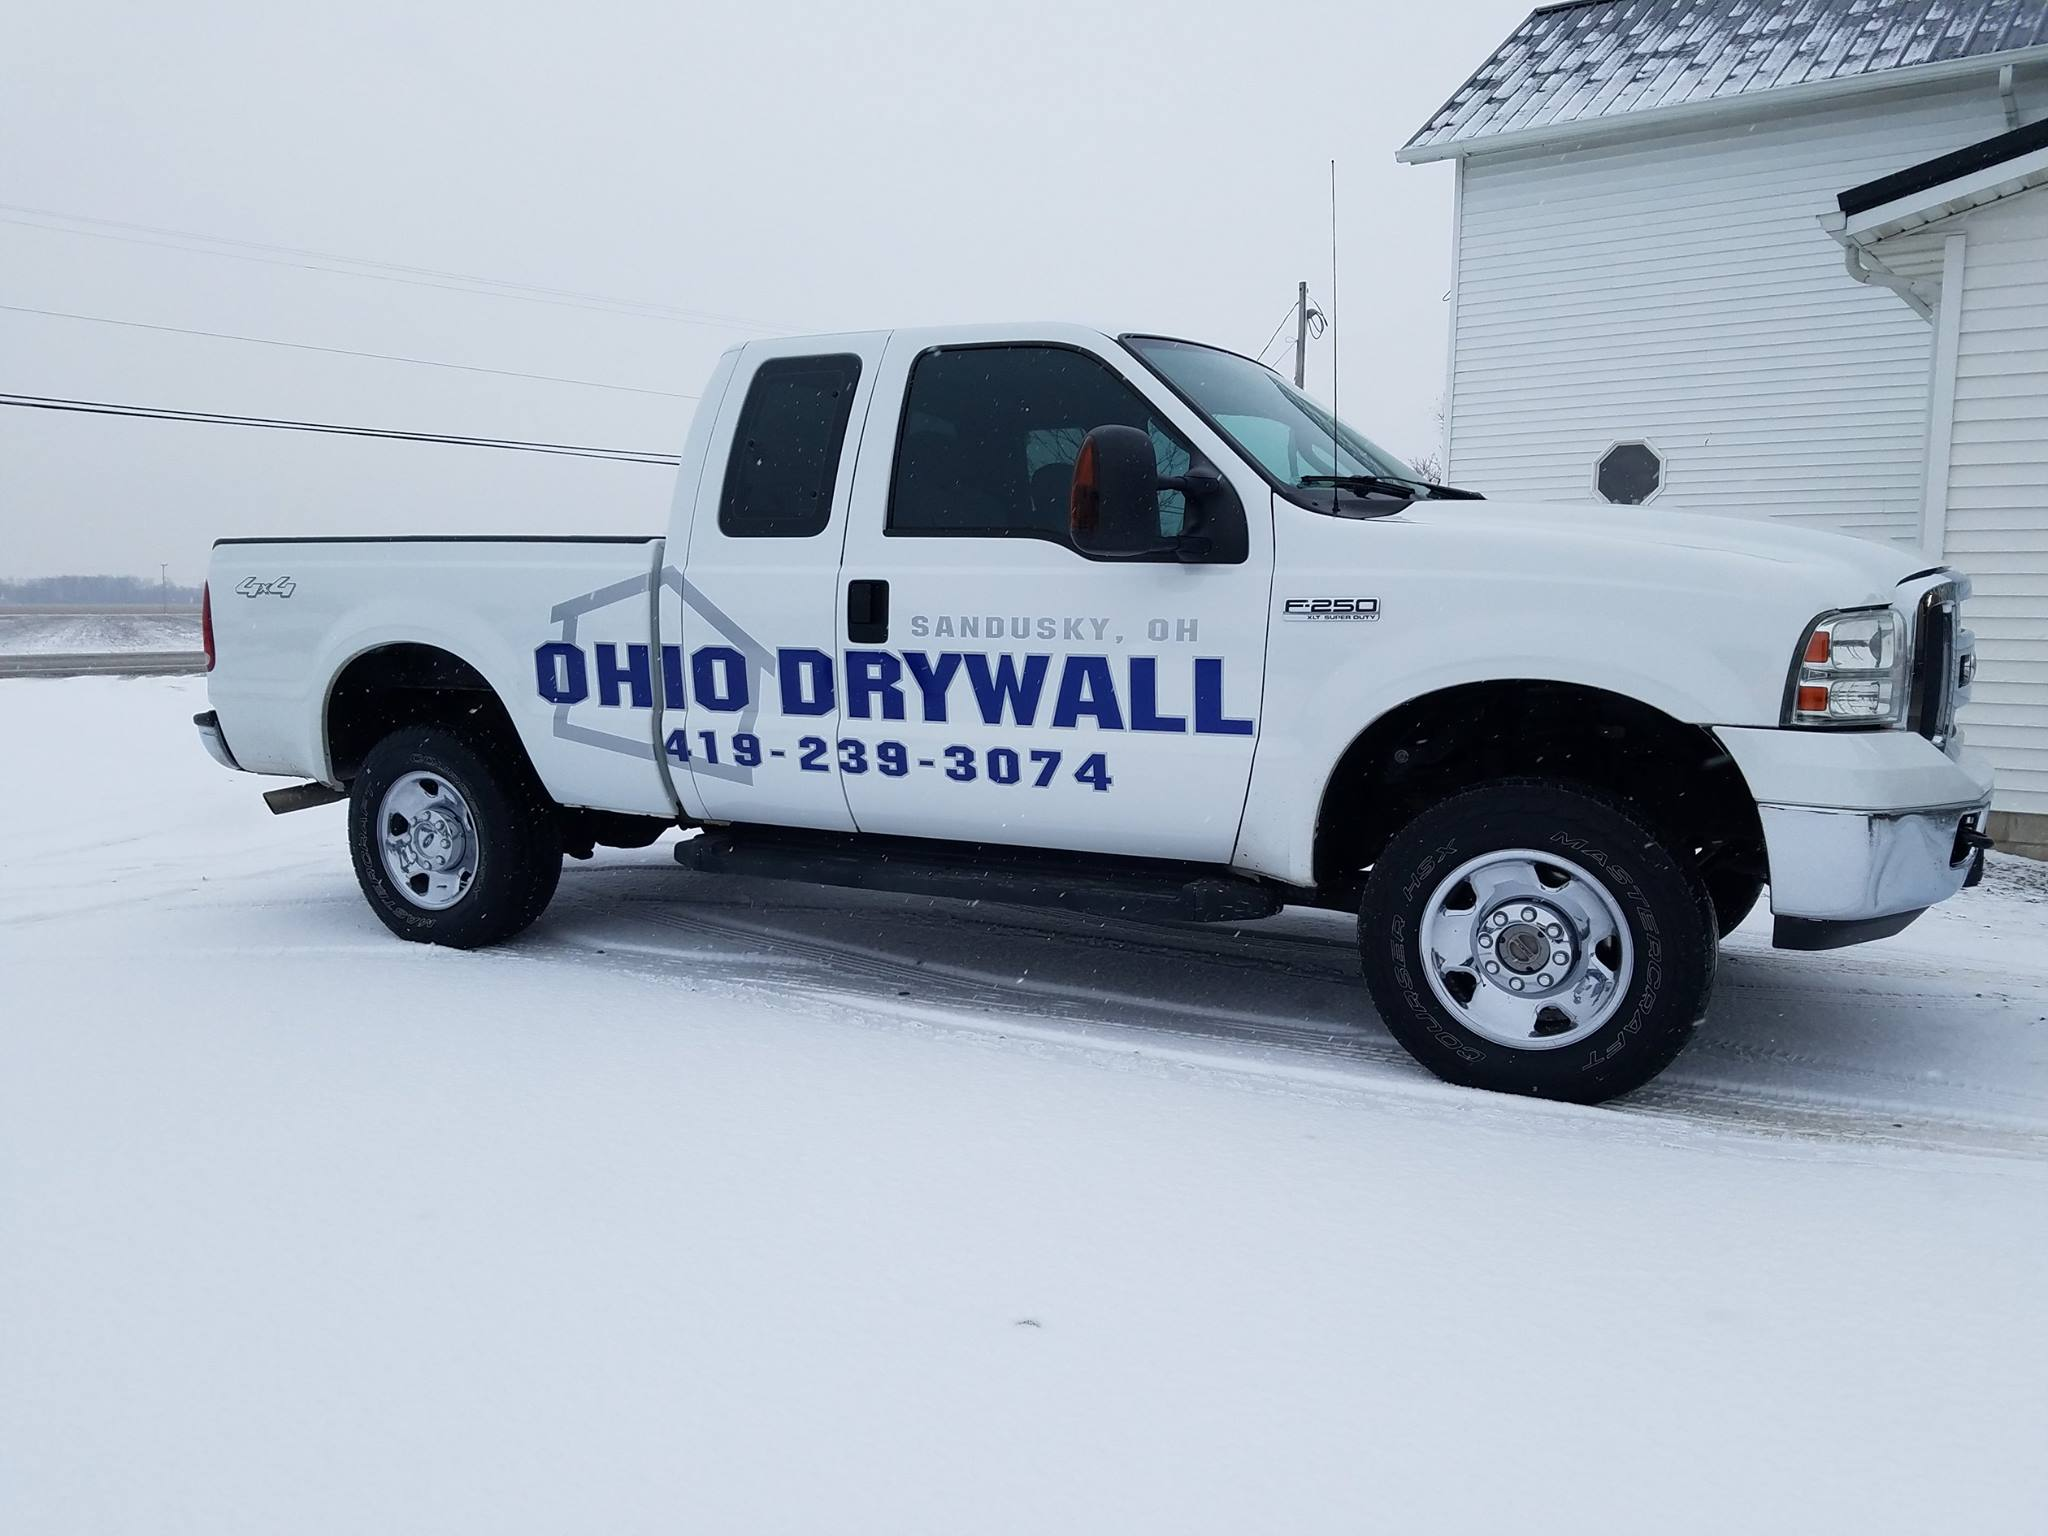 Ohio Drywall